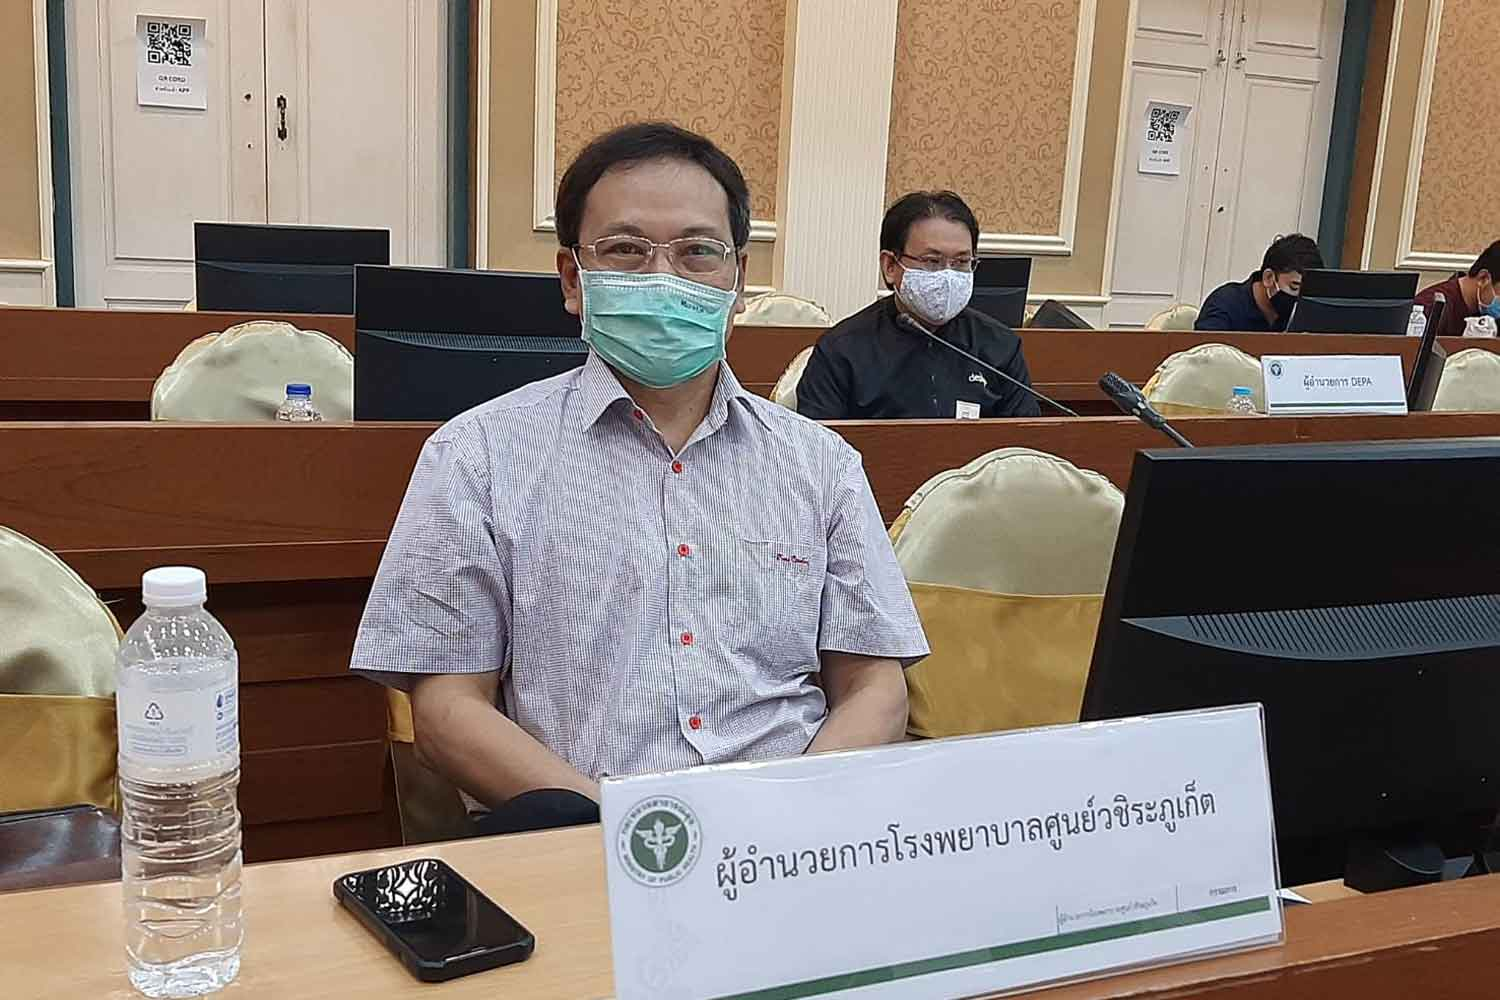 Dr Chalermpong Sukhonthapol, director of Vachira Phuket Hospital, pleds with people not to hide their Covid-19 infection risk, citing a case where a patient withheld details  and 112 medical staff were suspended from work and placed in quarantine as a consequence. (Photo: Achadtaya Chuenniran)